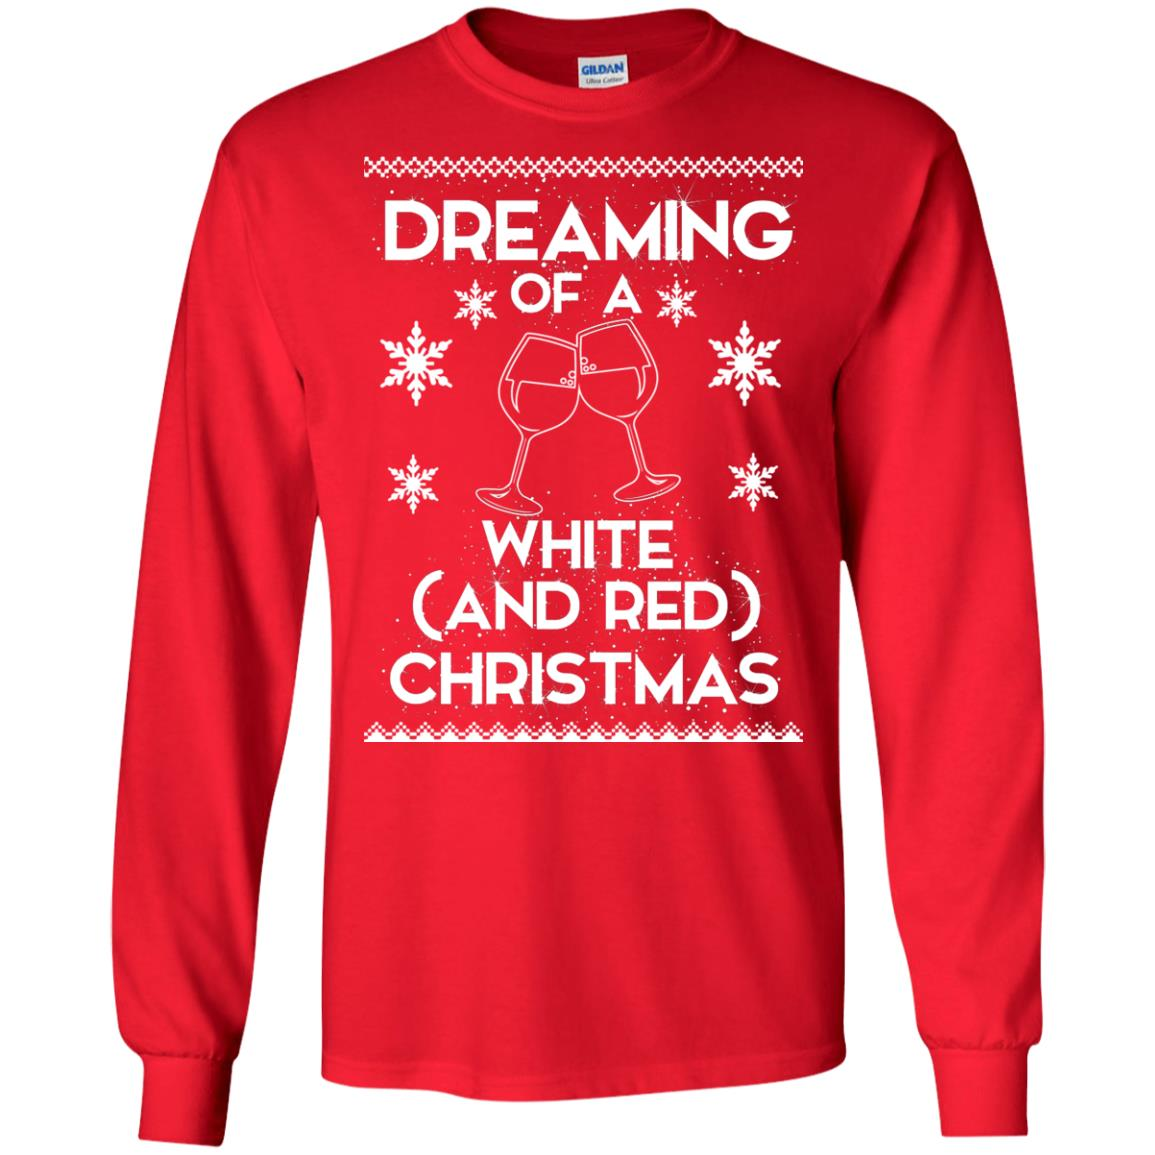 image 1757 - Dreaming of a White and Red Christmas Sweatshirt, Hoodie